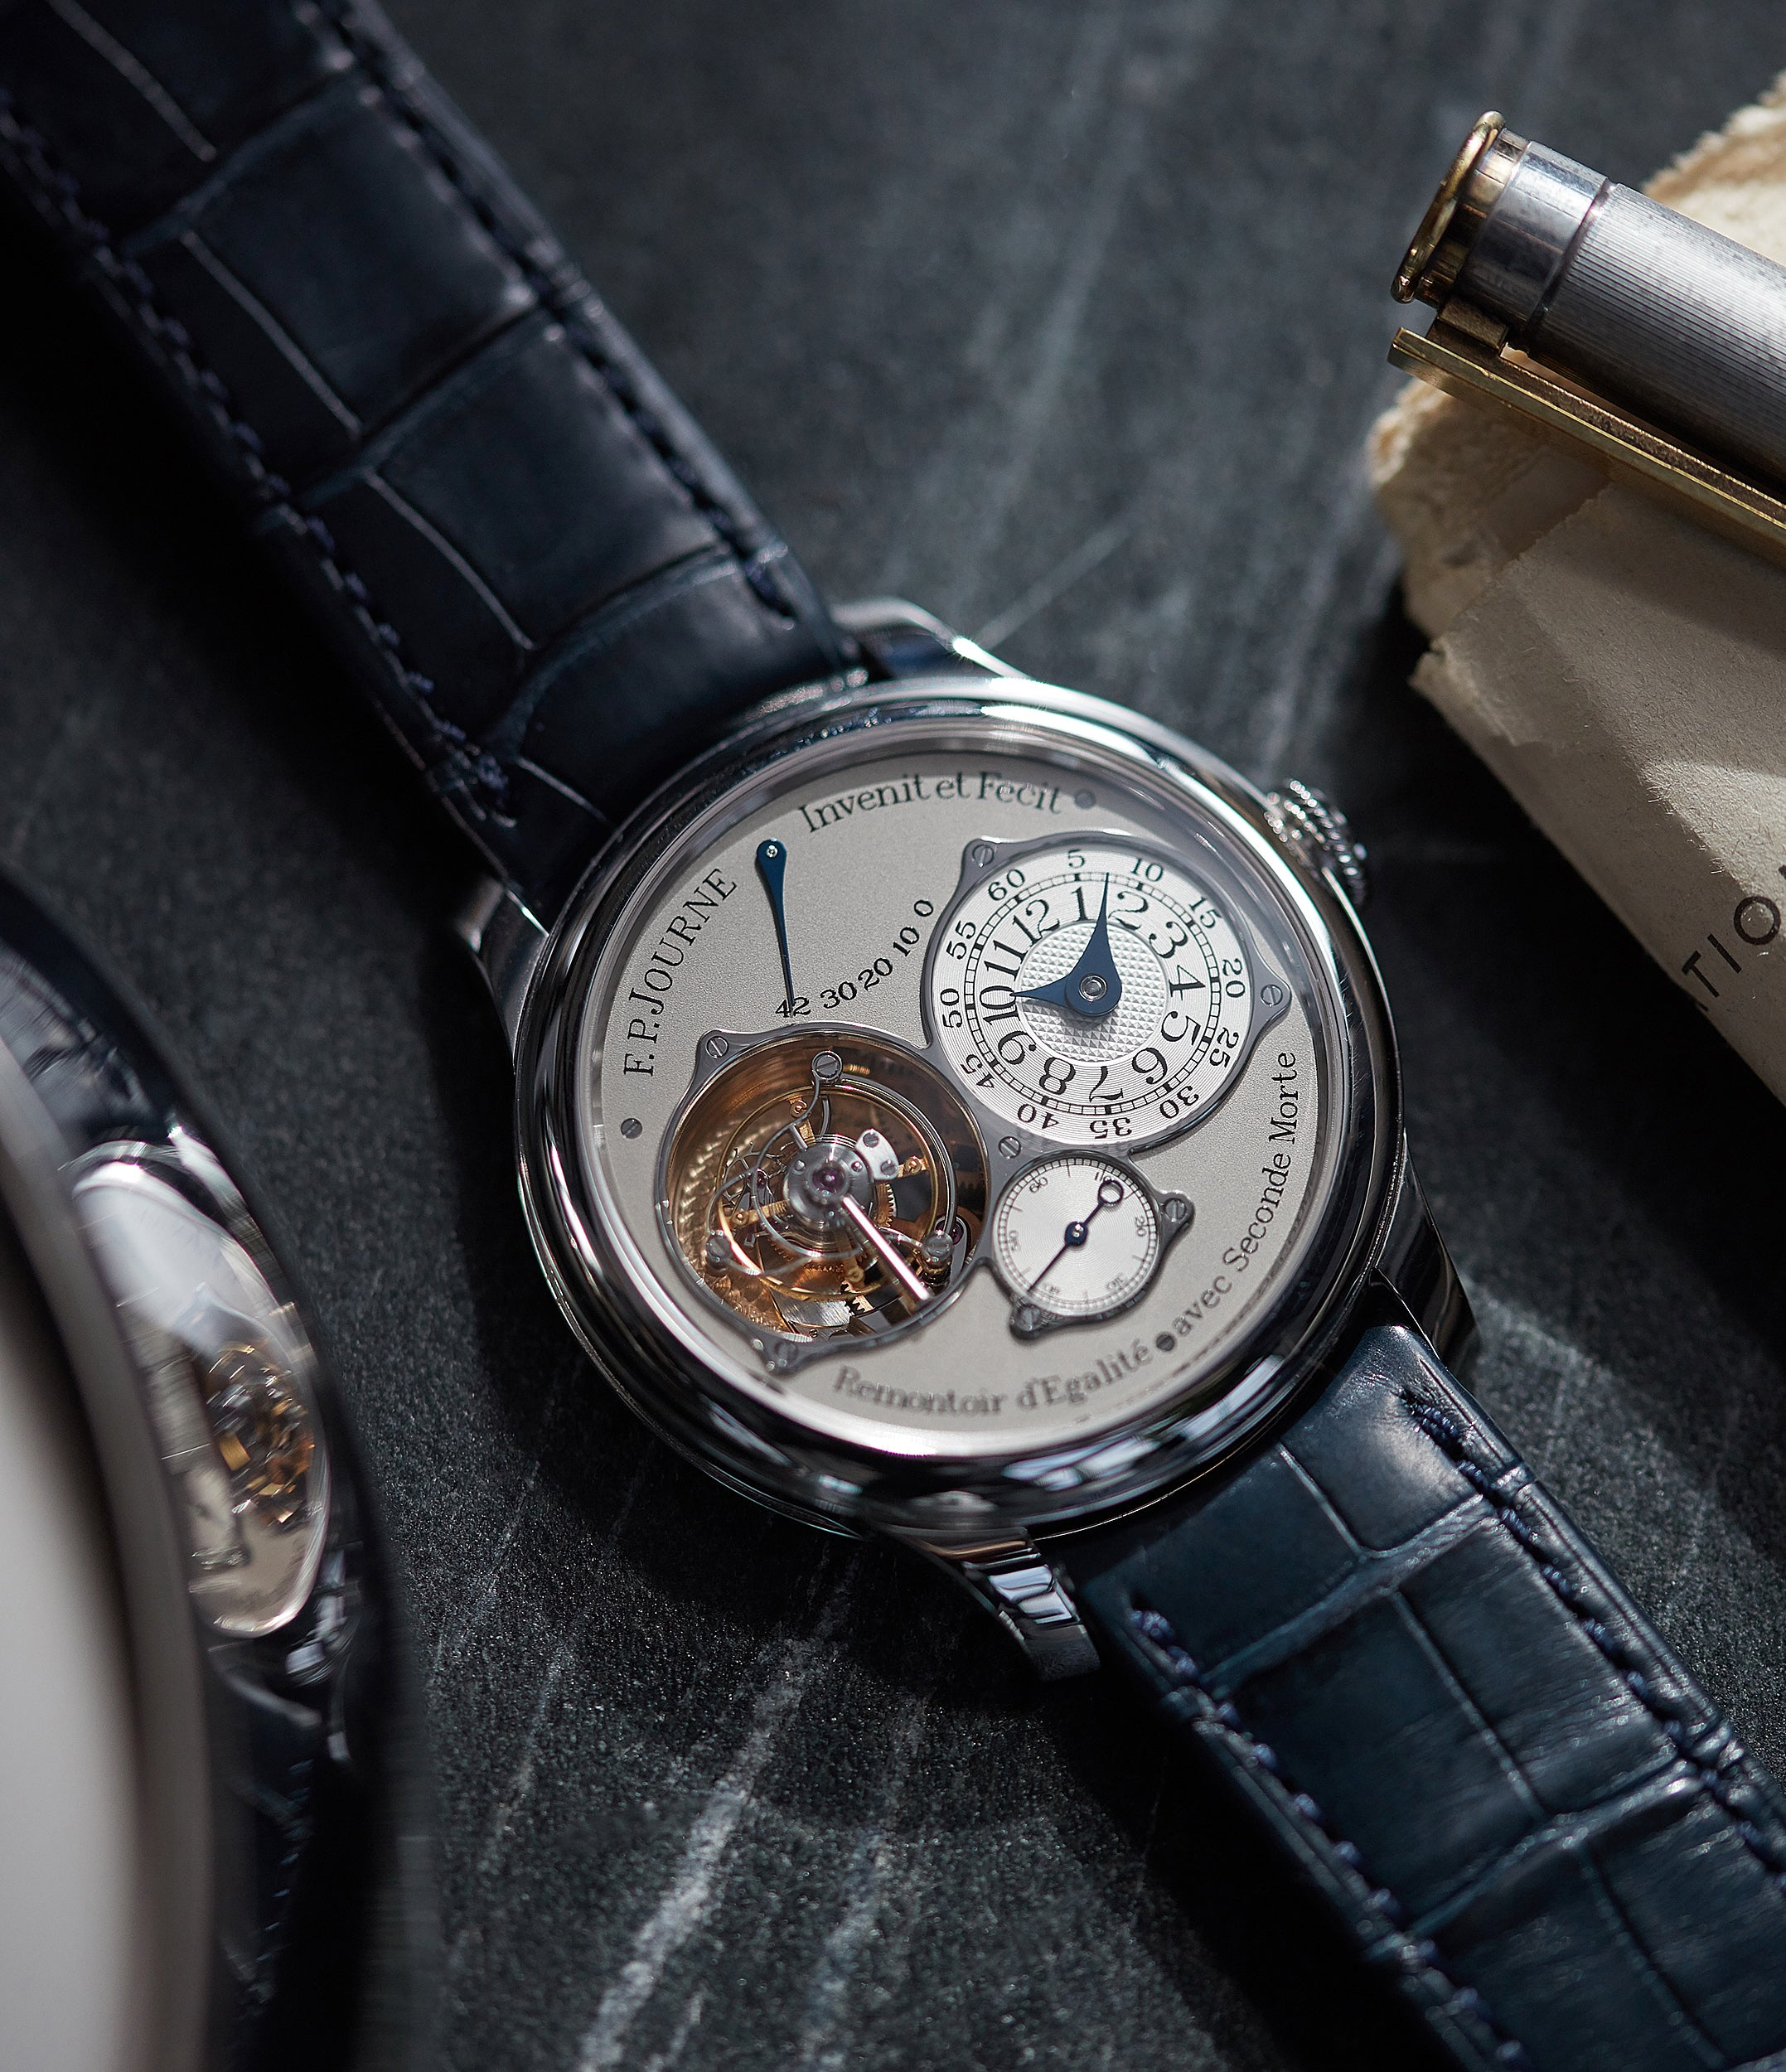 40mm F. P. Journe Tourbillon Souverain TN dead-beat seconds platinum pre-owned watch for sale online at A Collected Man London UK specialist of rare watches